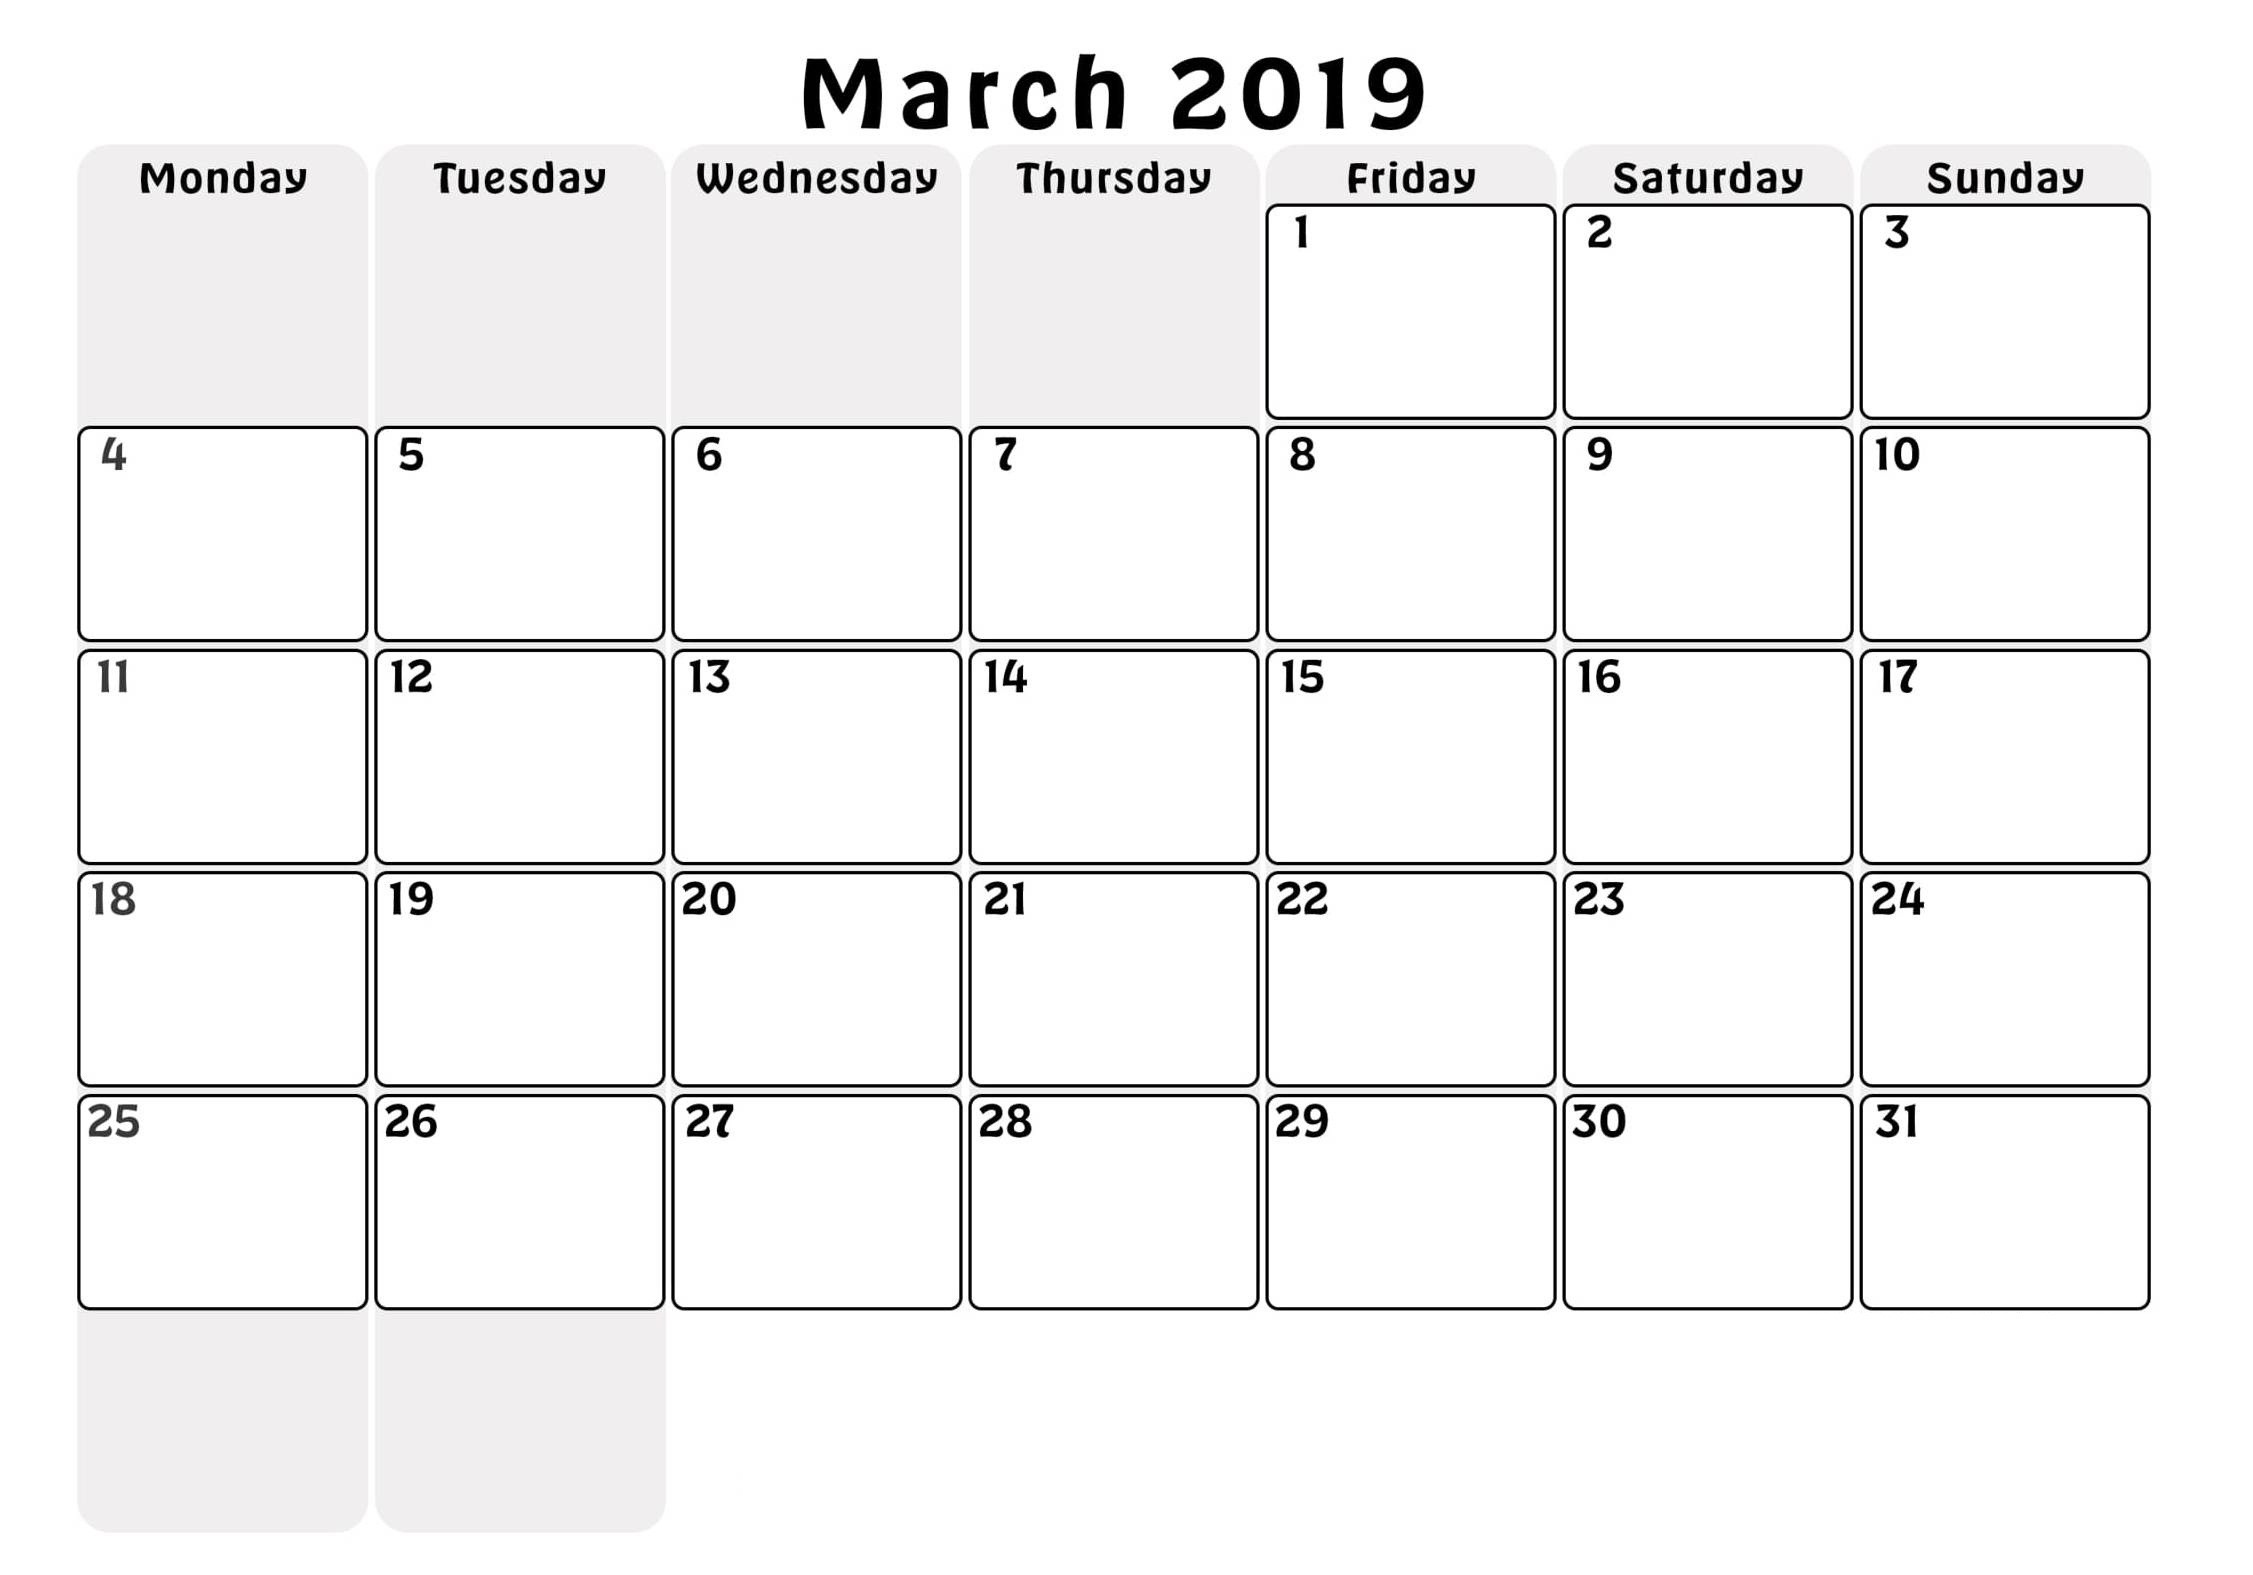 March Calendar 2019 Más Reciente 2019 March Calendar Png 2018 Printable Calendar Store Of March Calendar 2019 Más Recientes March 2019 Wall Calendar Colorful Sketch Horizontal Template Letter